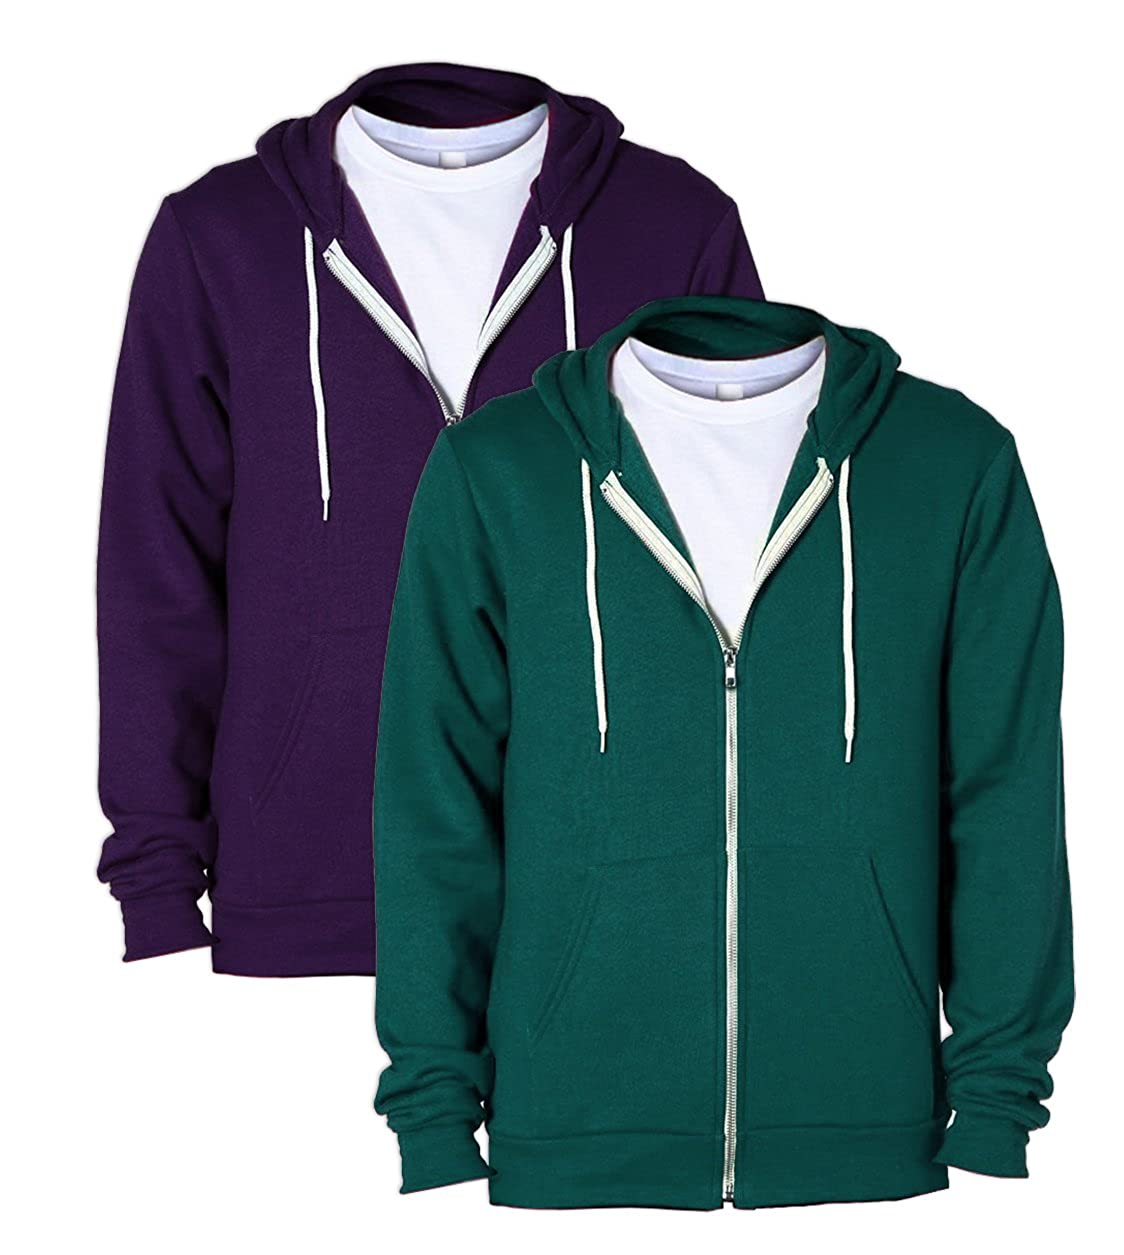 1 Imperial Purple American Apparel F497 Flex Fleece Zip Hoodie S 1 Forest